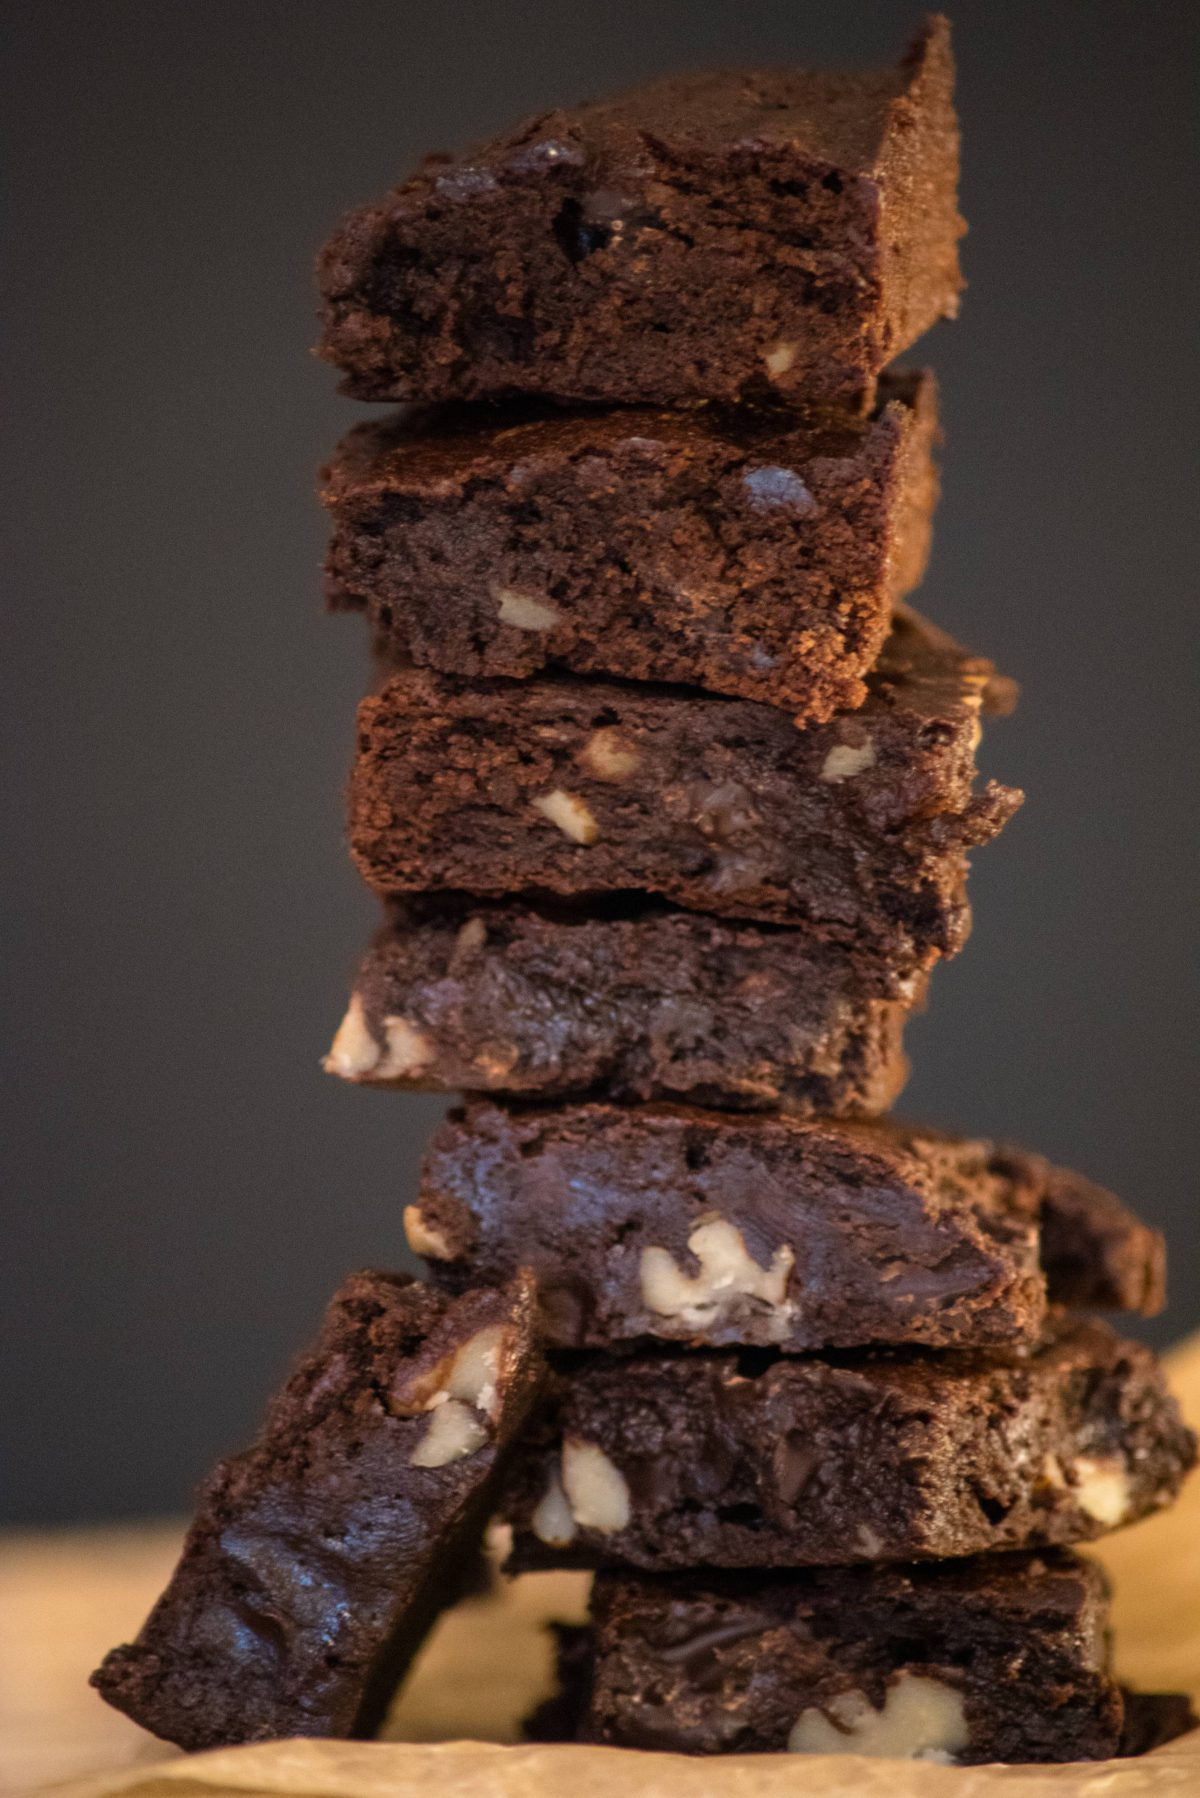 Edibles – What to Do if You've Eaten Too Much